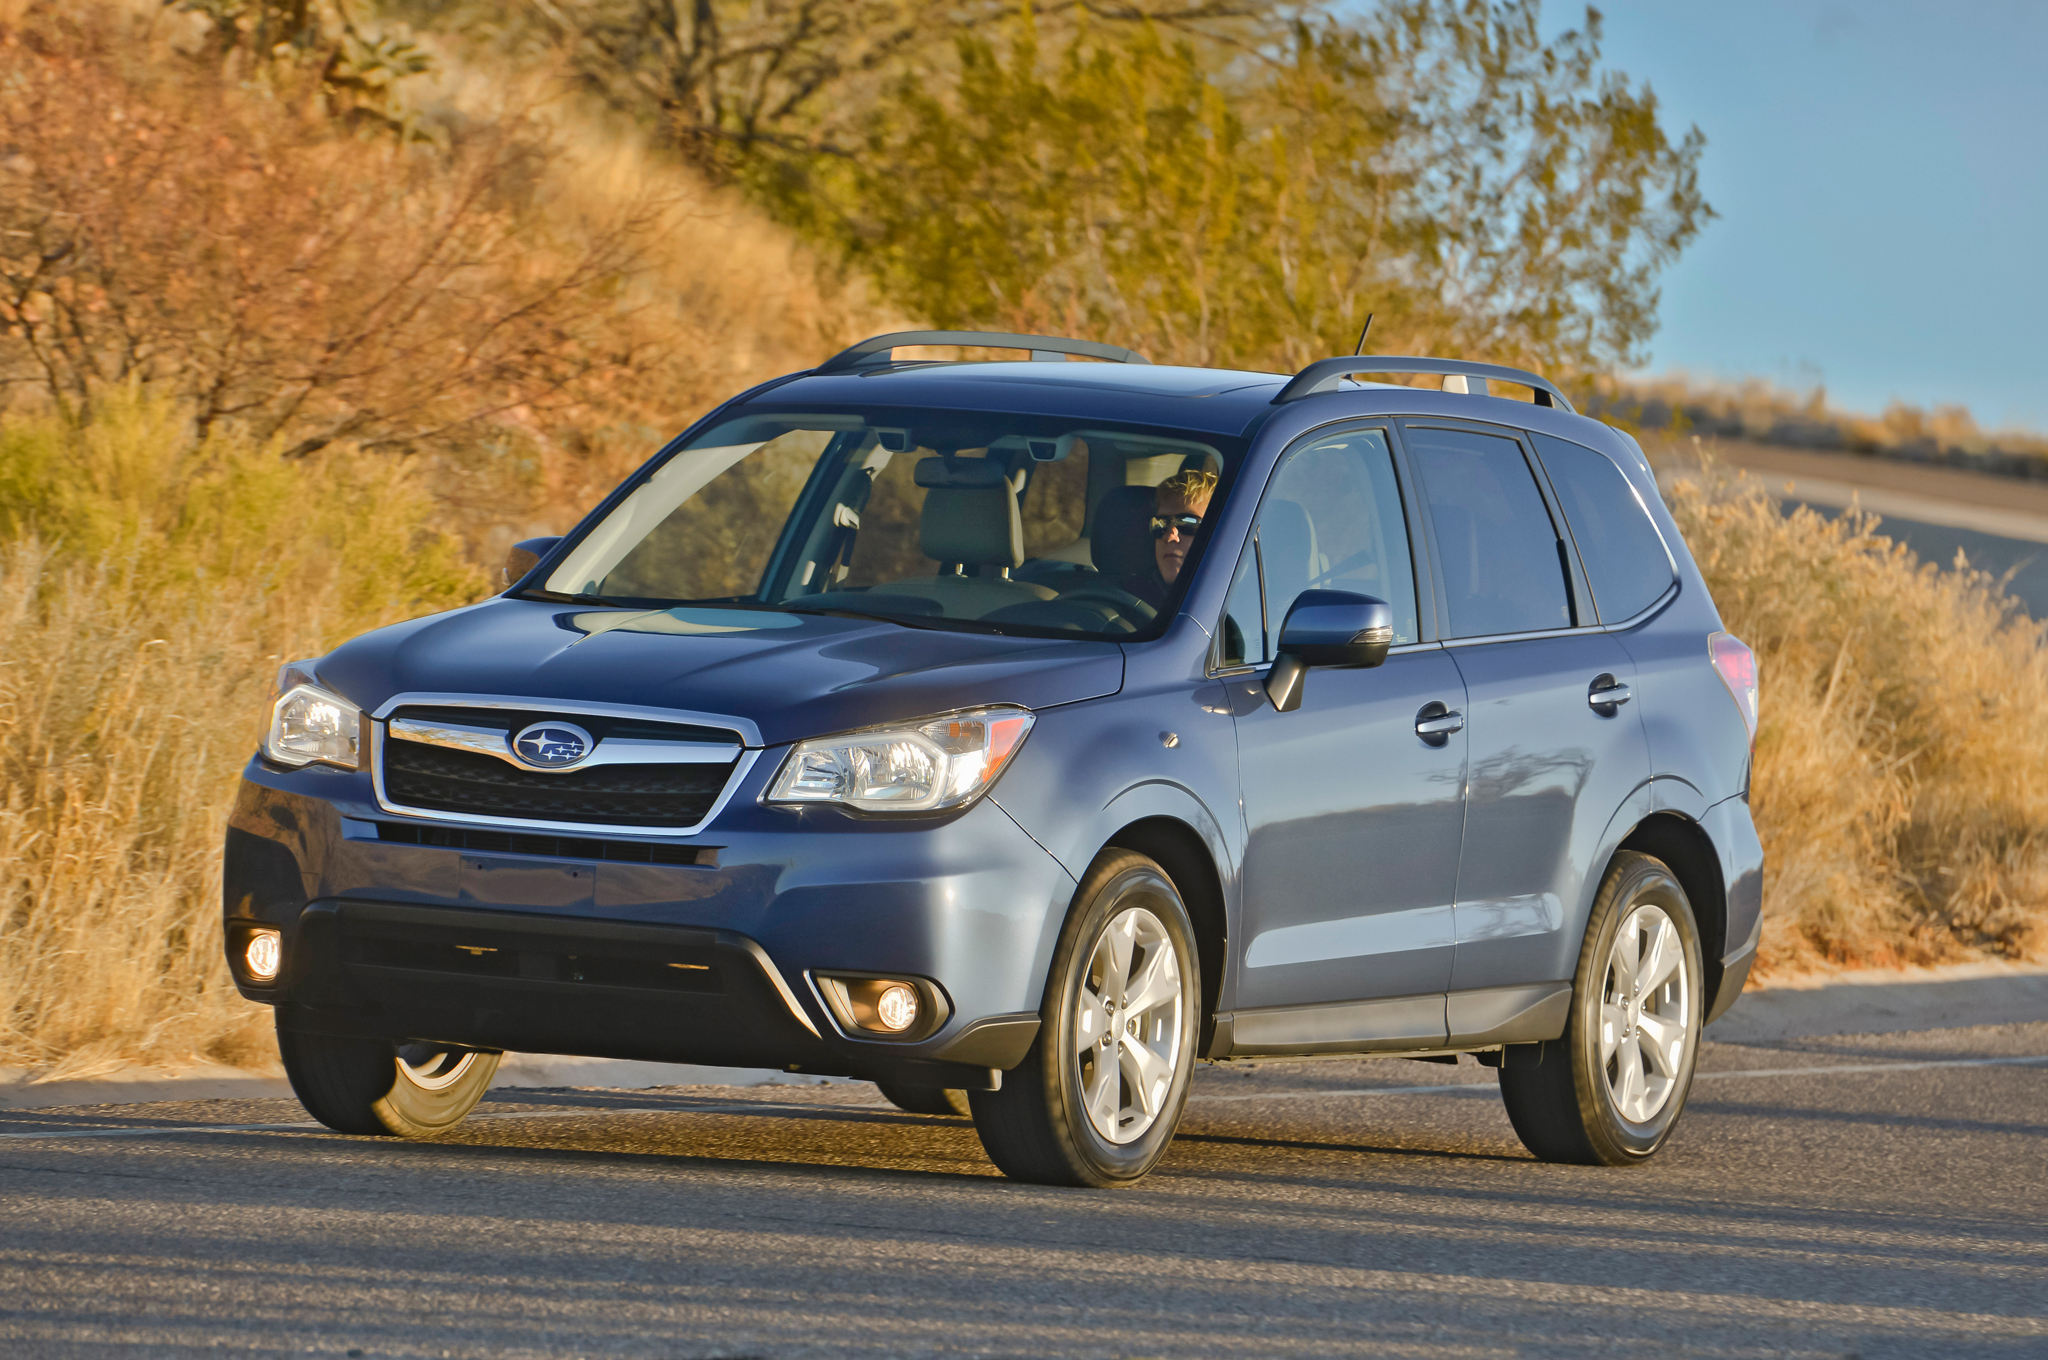 2014 subaru forester 2 5i premium manual first test motor trend rh motortrend com 6-Speed Manual SUV New SUVs with Manual Transmissions